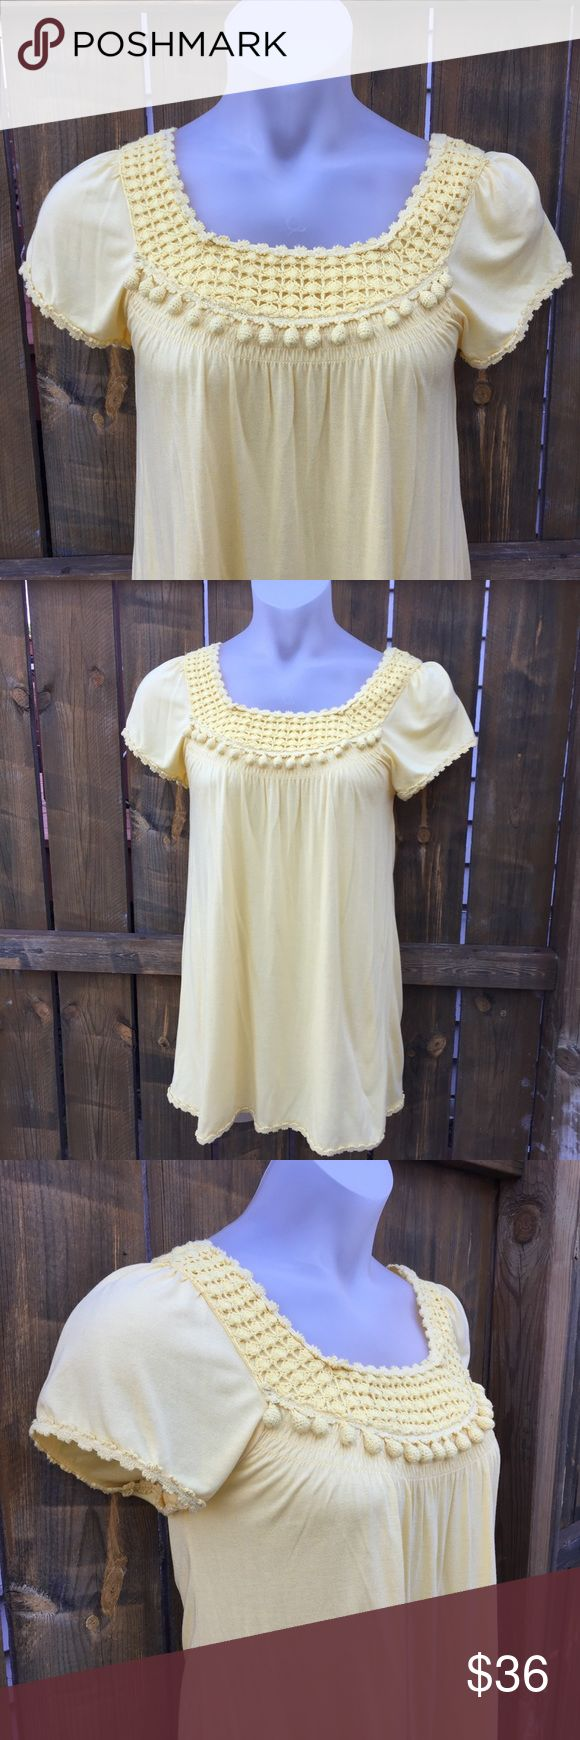 JUICY COUTURE Yellow Dress SZ M Crochet Detail JUICY COUTURE Yellow Dress SZ M Crochet Detail✨ absolutely stunning! The neckline alone-plus the hem detail coordinates. Pair with brown wedges for a fun look this summer! Juicy Couture Dresses